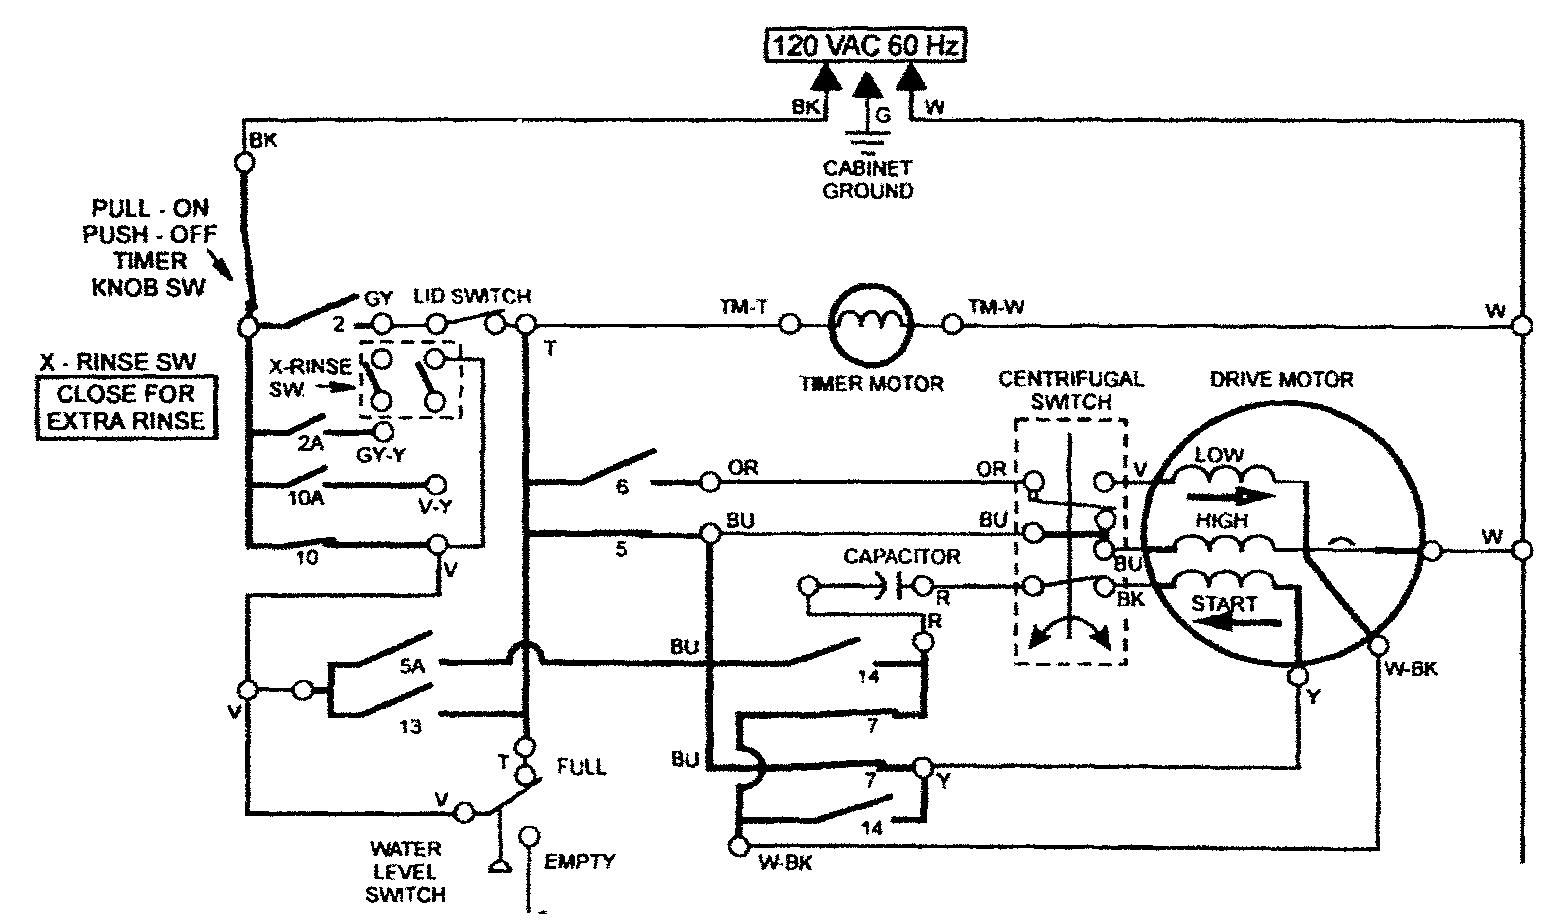 [SCHEMATICS_4US]  Wiring Diagram Of Washing Machine - bookingritzcarlton.info | Washing  machine motor, Washing machine, Old washing machine | Wiring Diagram Of Washing Machine Motor |  | Pinterest